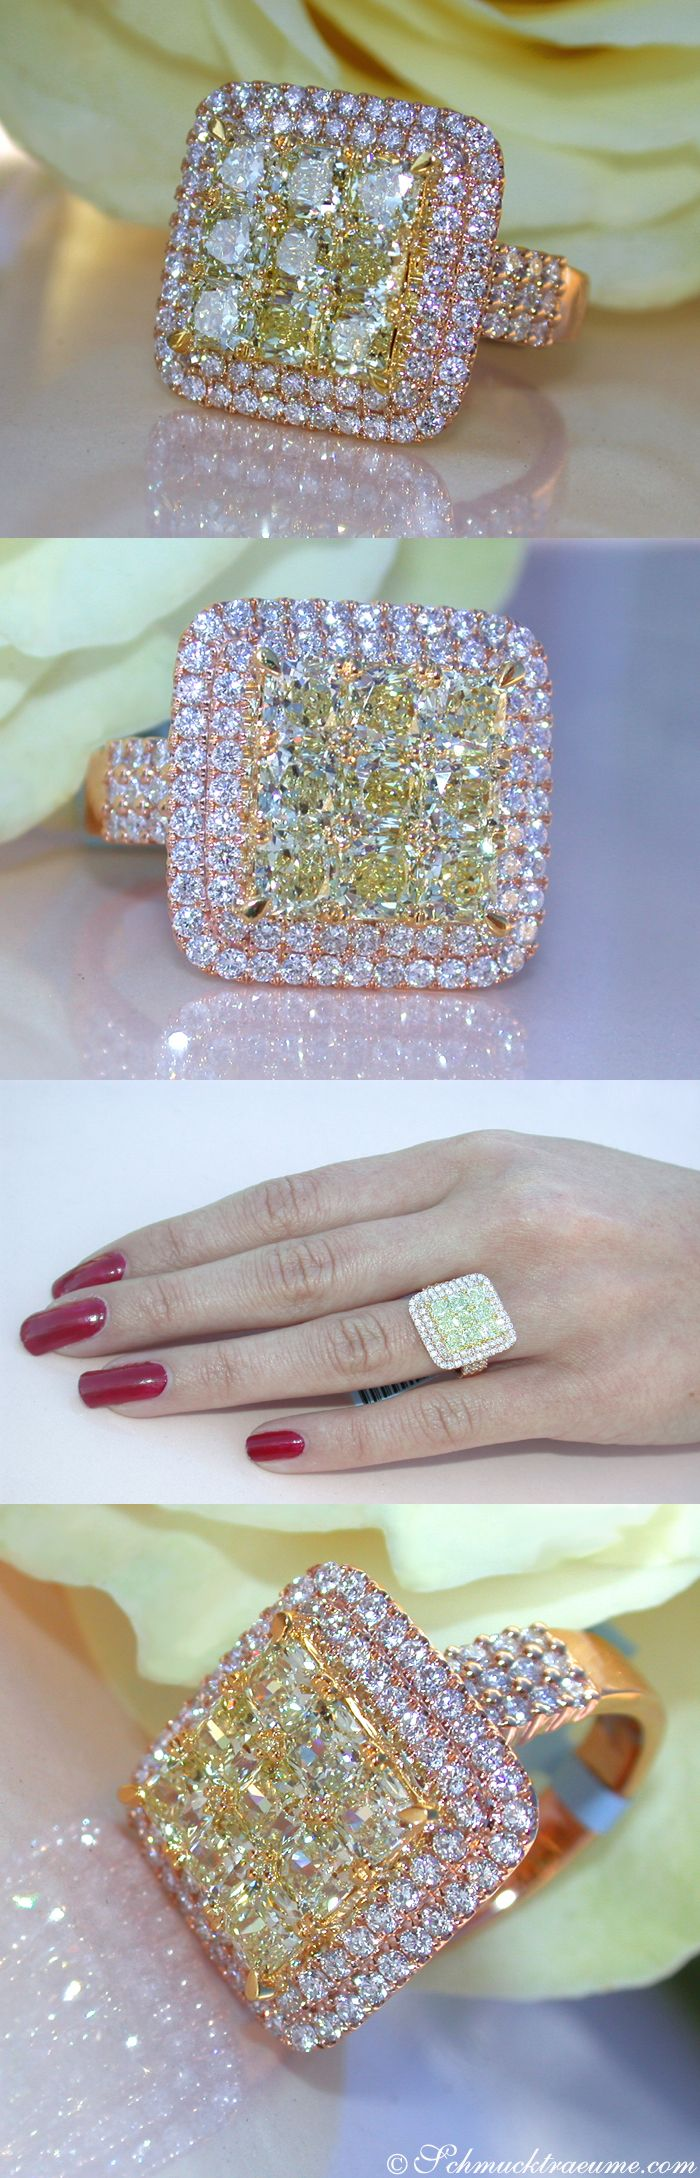 17 Best ideas about White Diamonds on Pinterest | Simple rings ...